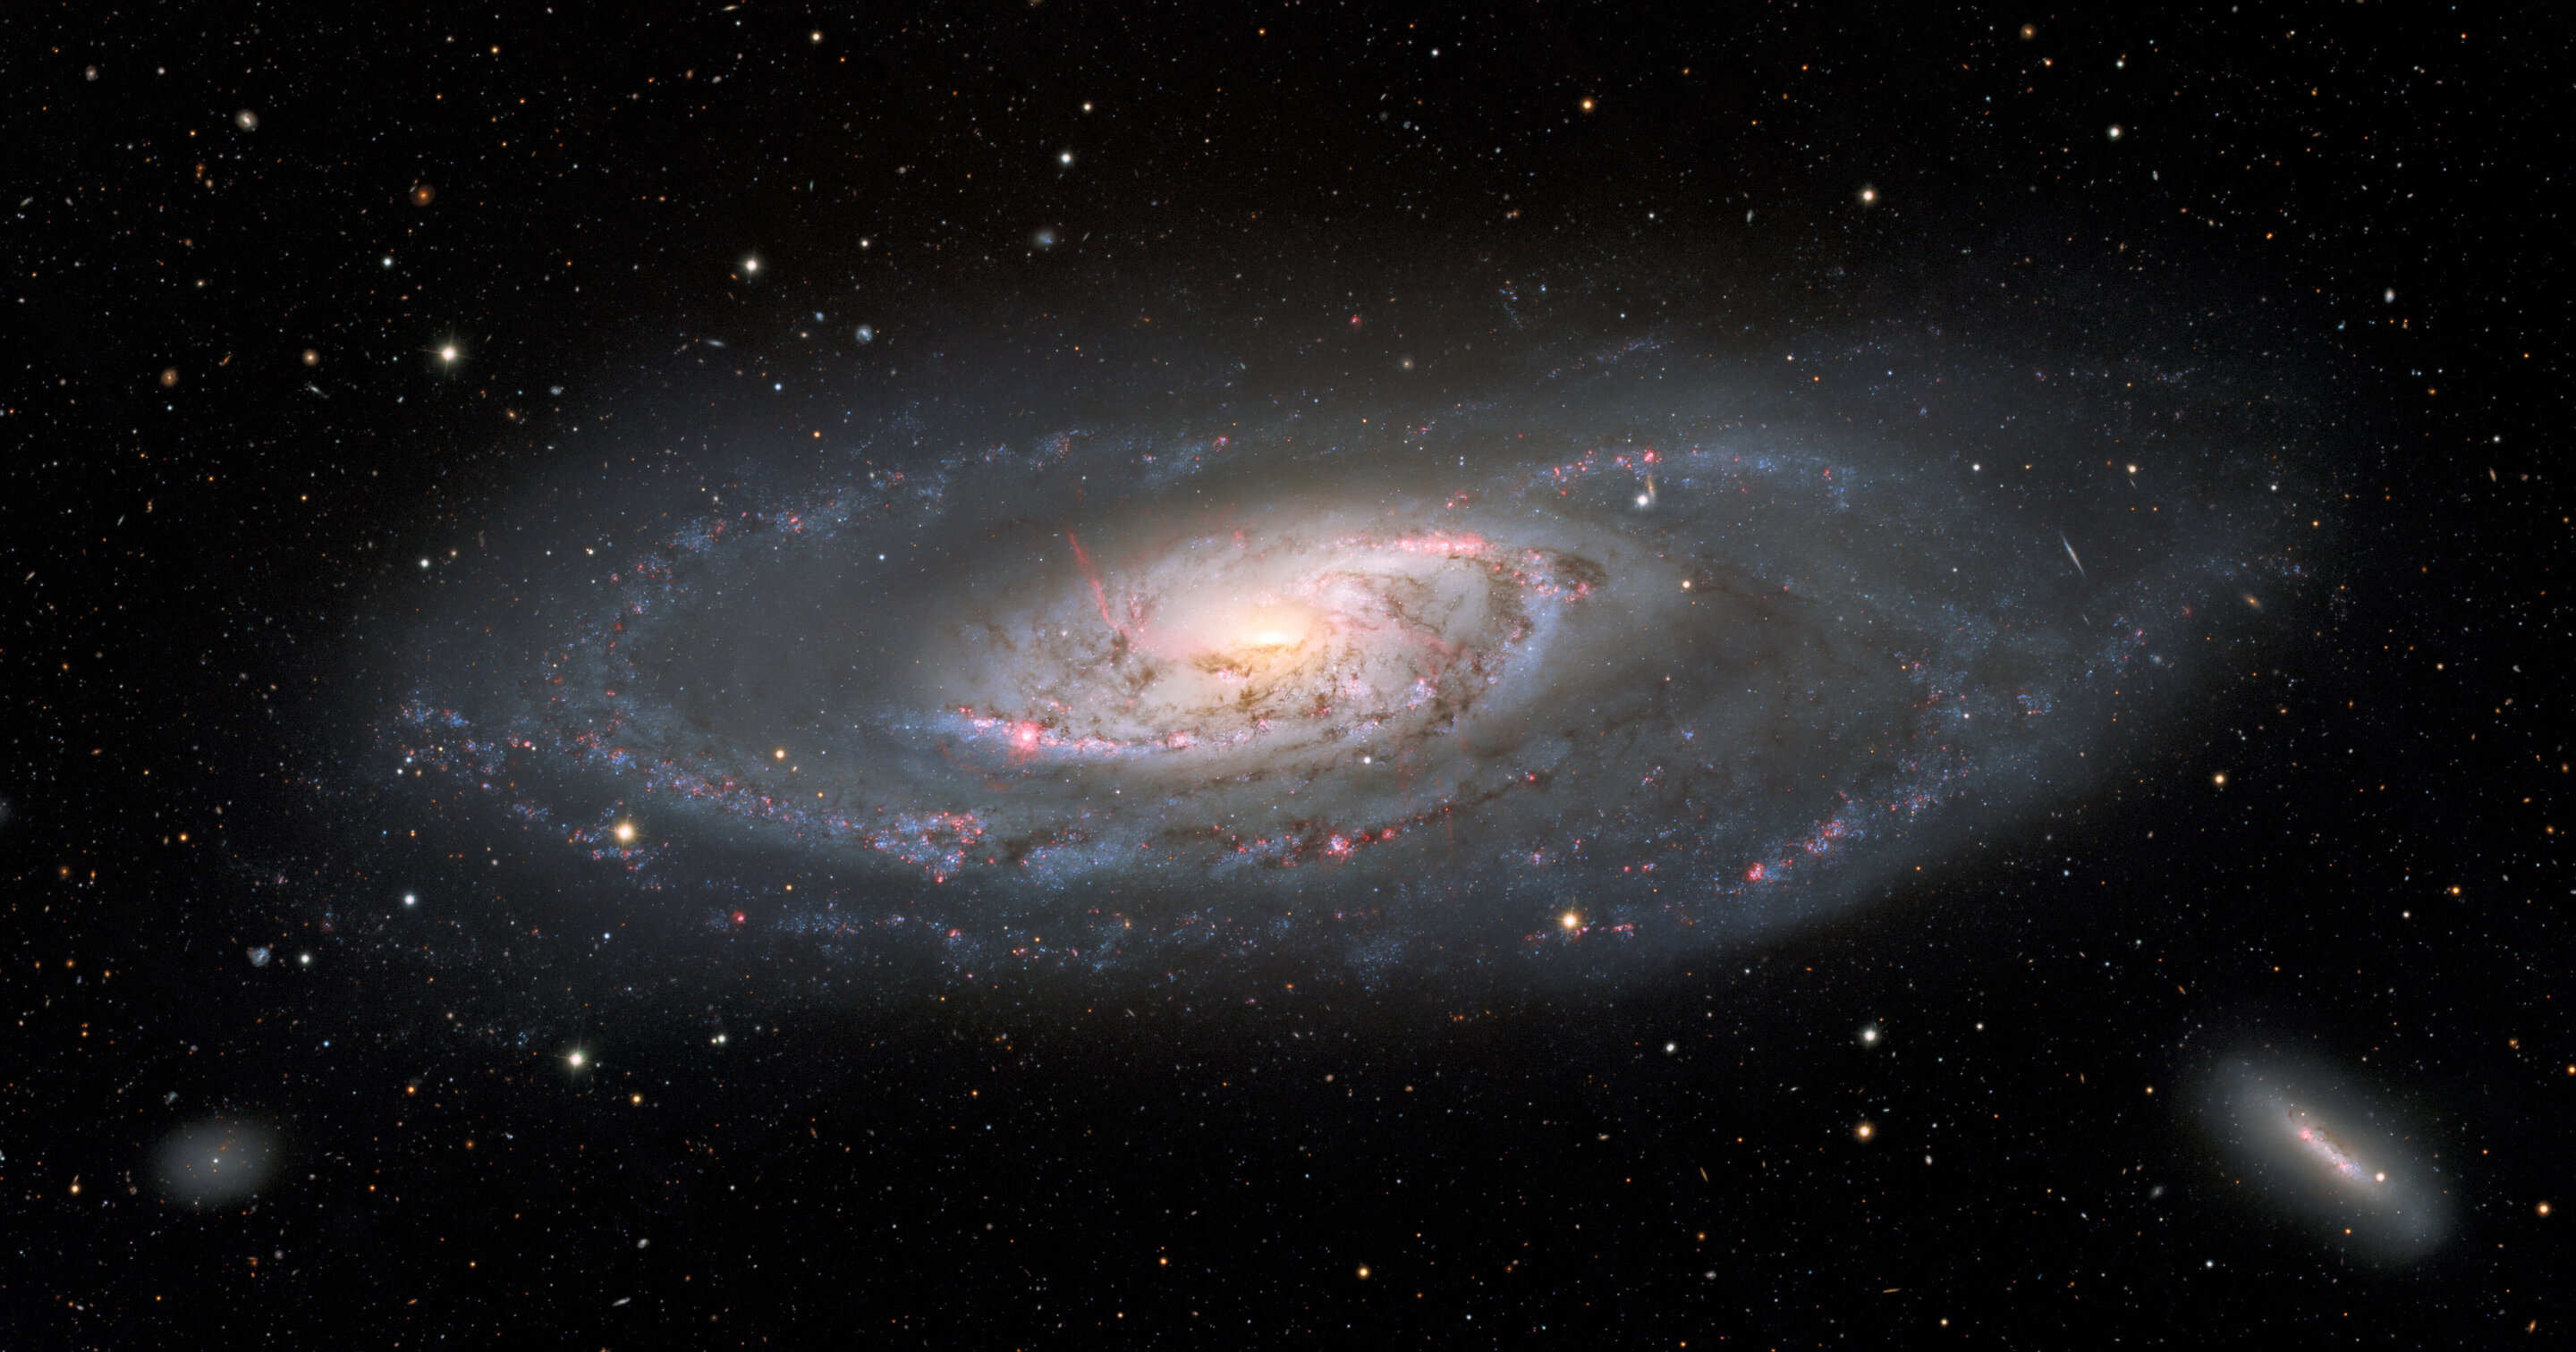 Striking new image of the stately galaxy Messier 106 taken with the Nicholas U. Mayall 4-meter Telescope